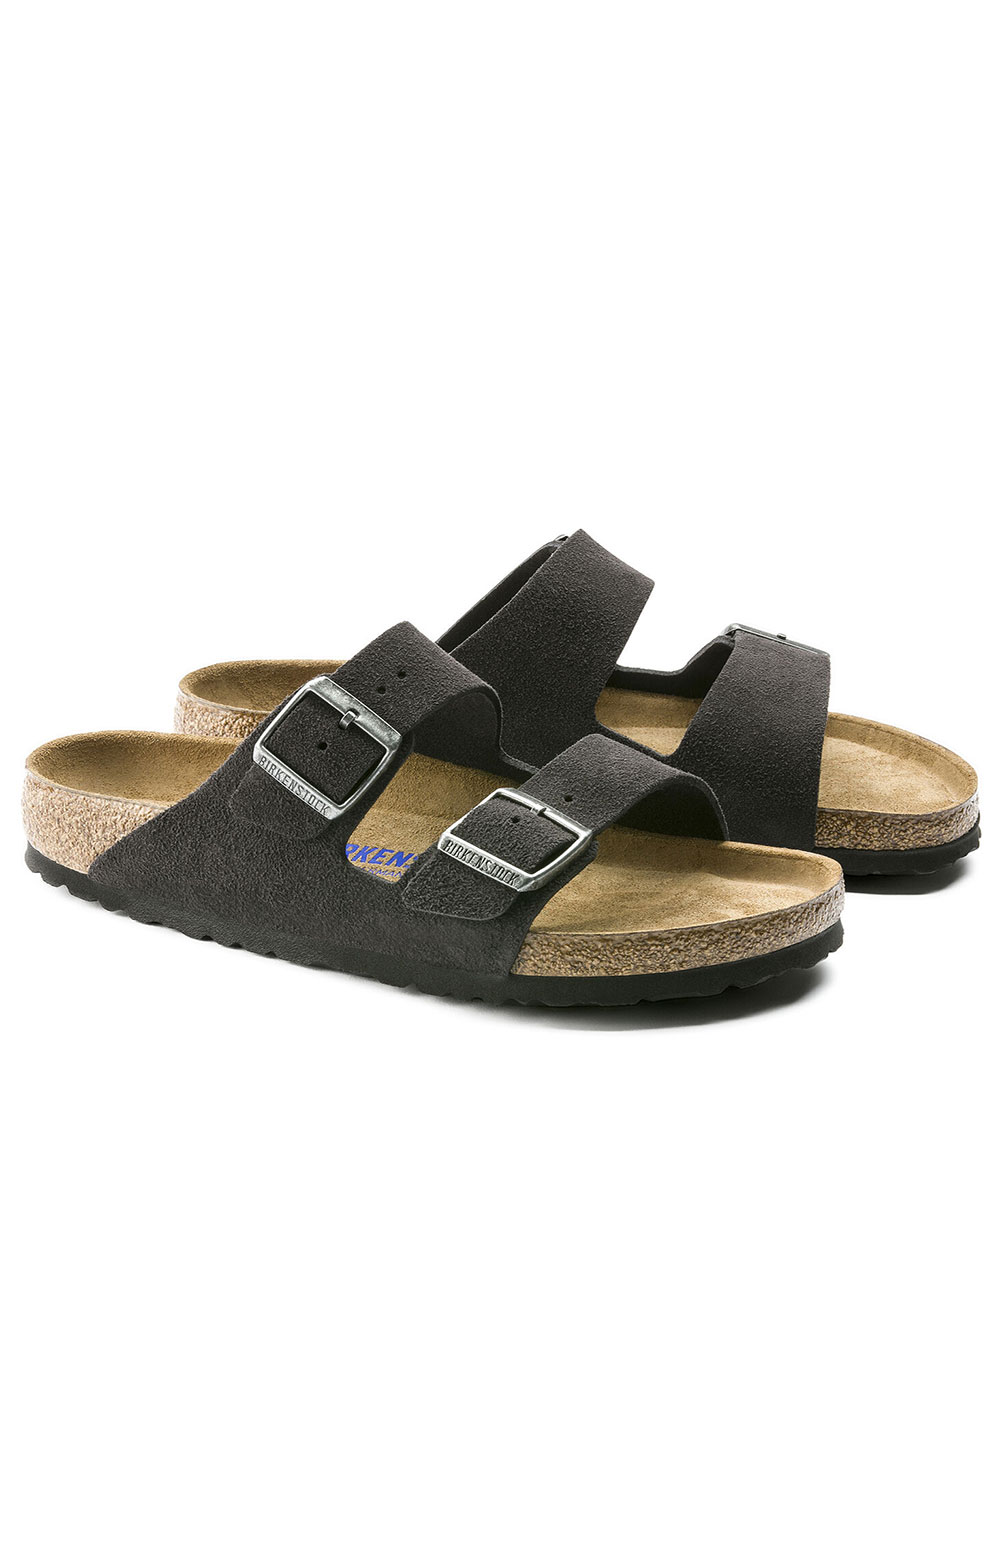 (0552321) Arizona Sandals - Velvet Grey